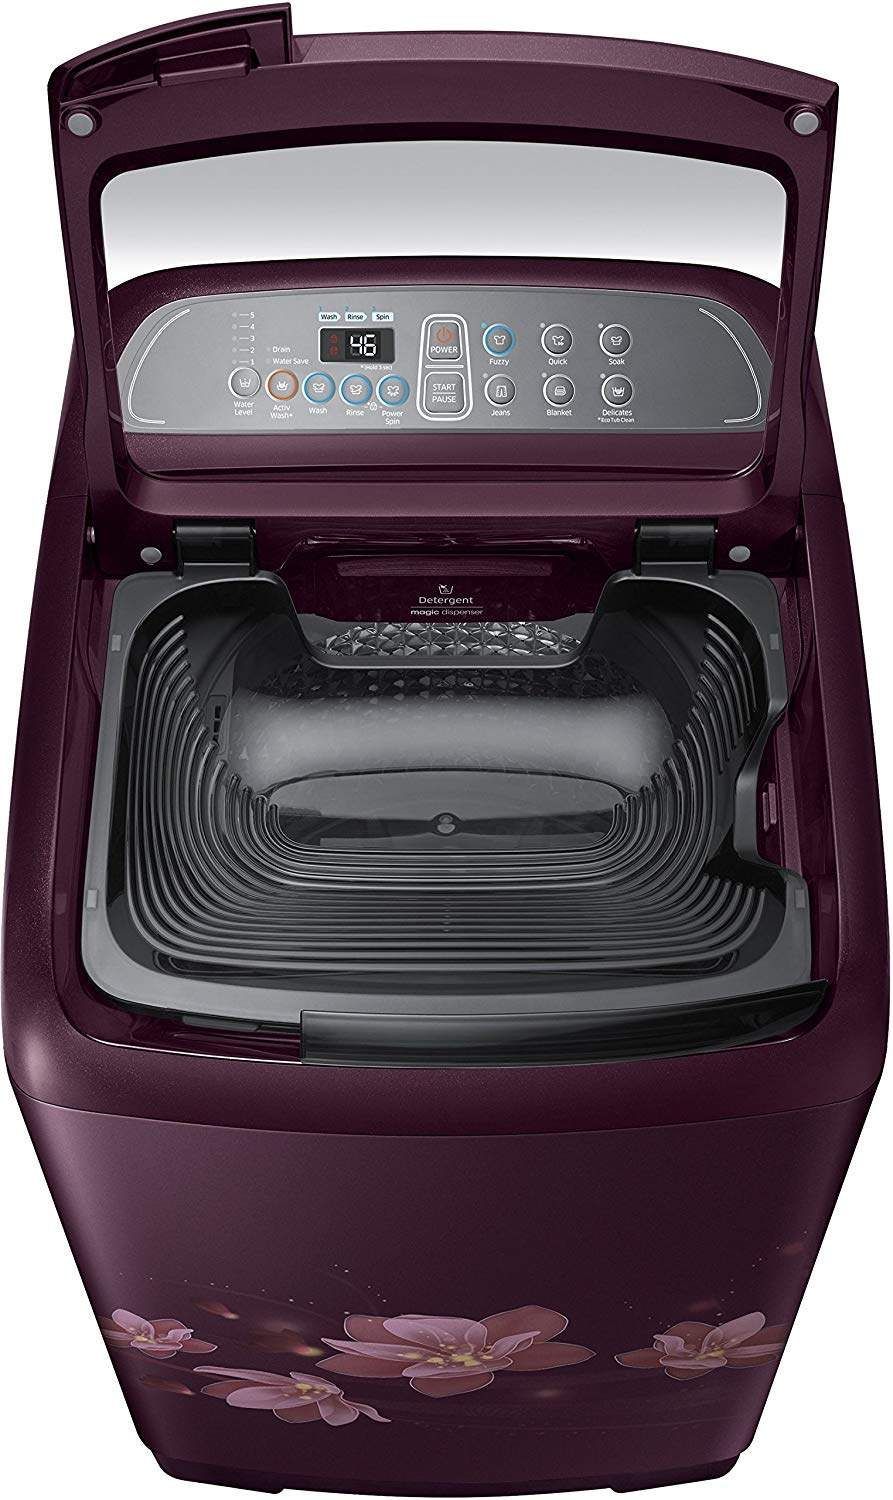 Samsung 7 Kg Fully-Automatic Top Loading Washing Machine (WA70M4020HP/TL, Magnolia Plum)